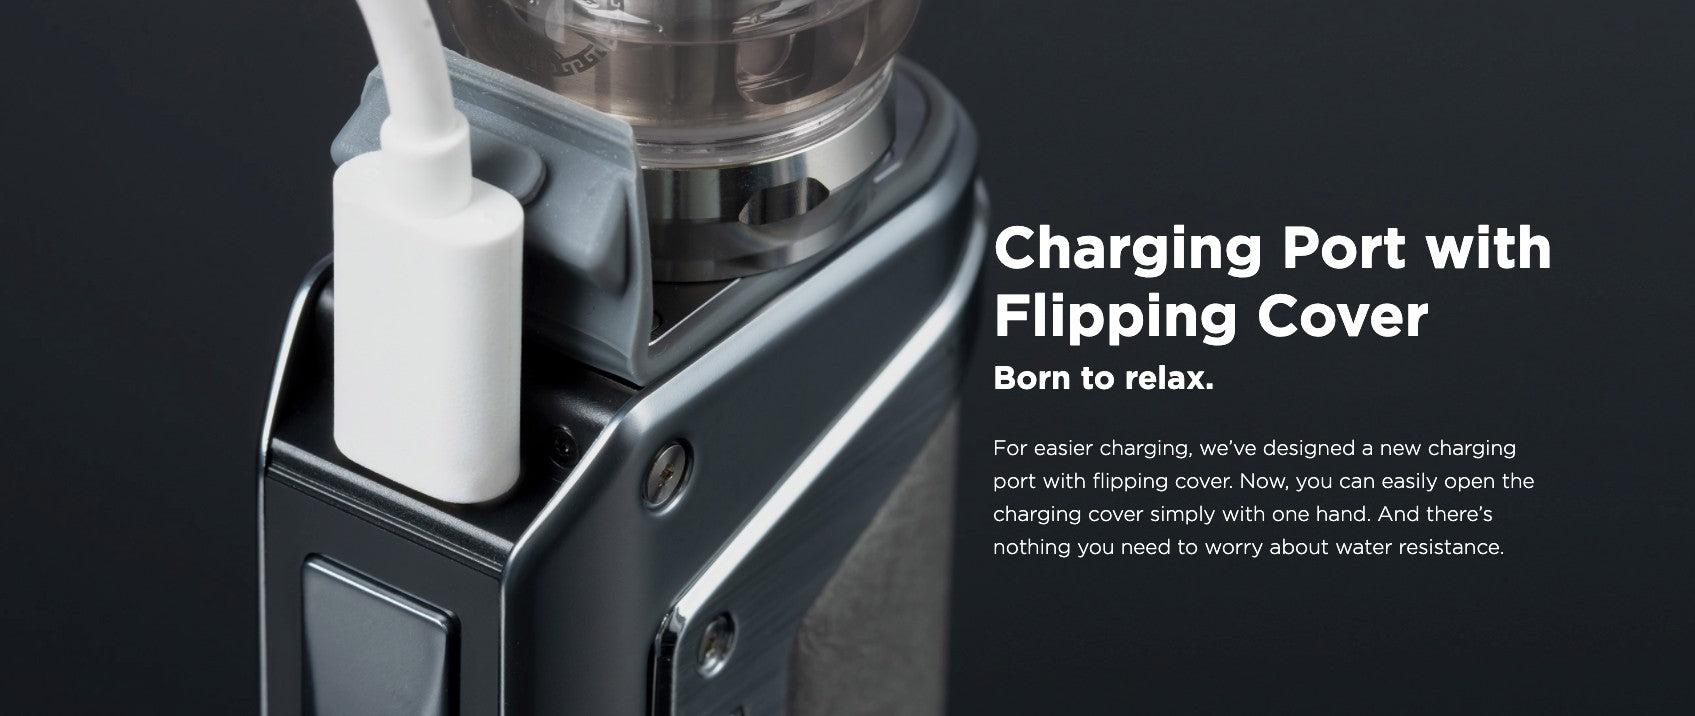 Flipping charge port makes access very easy to recharge